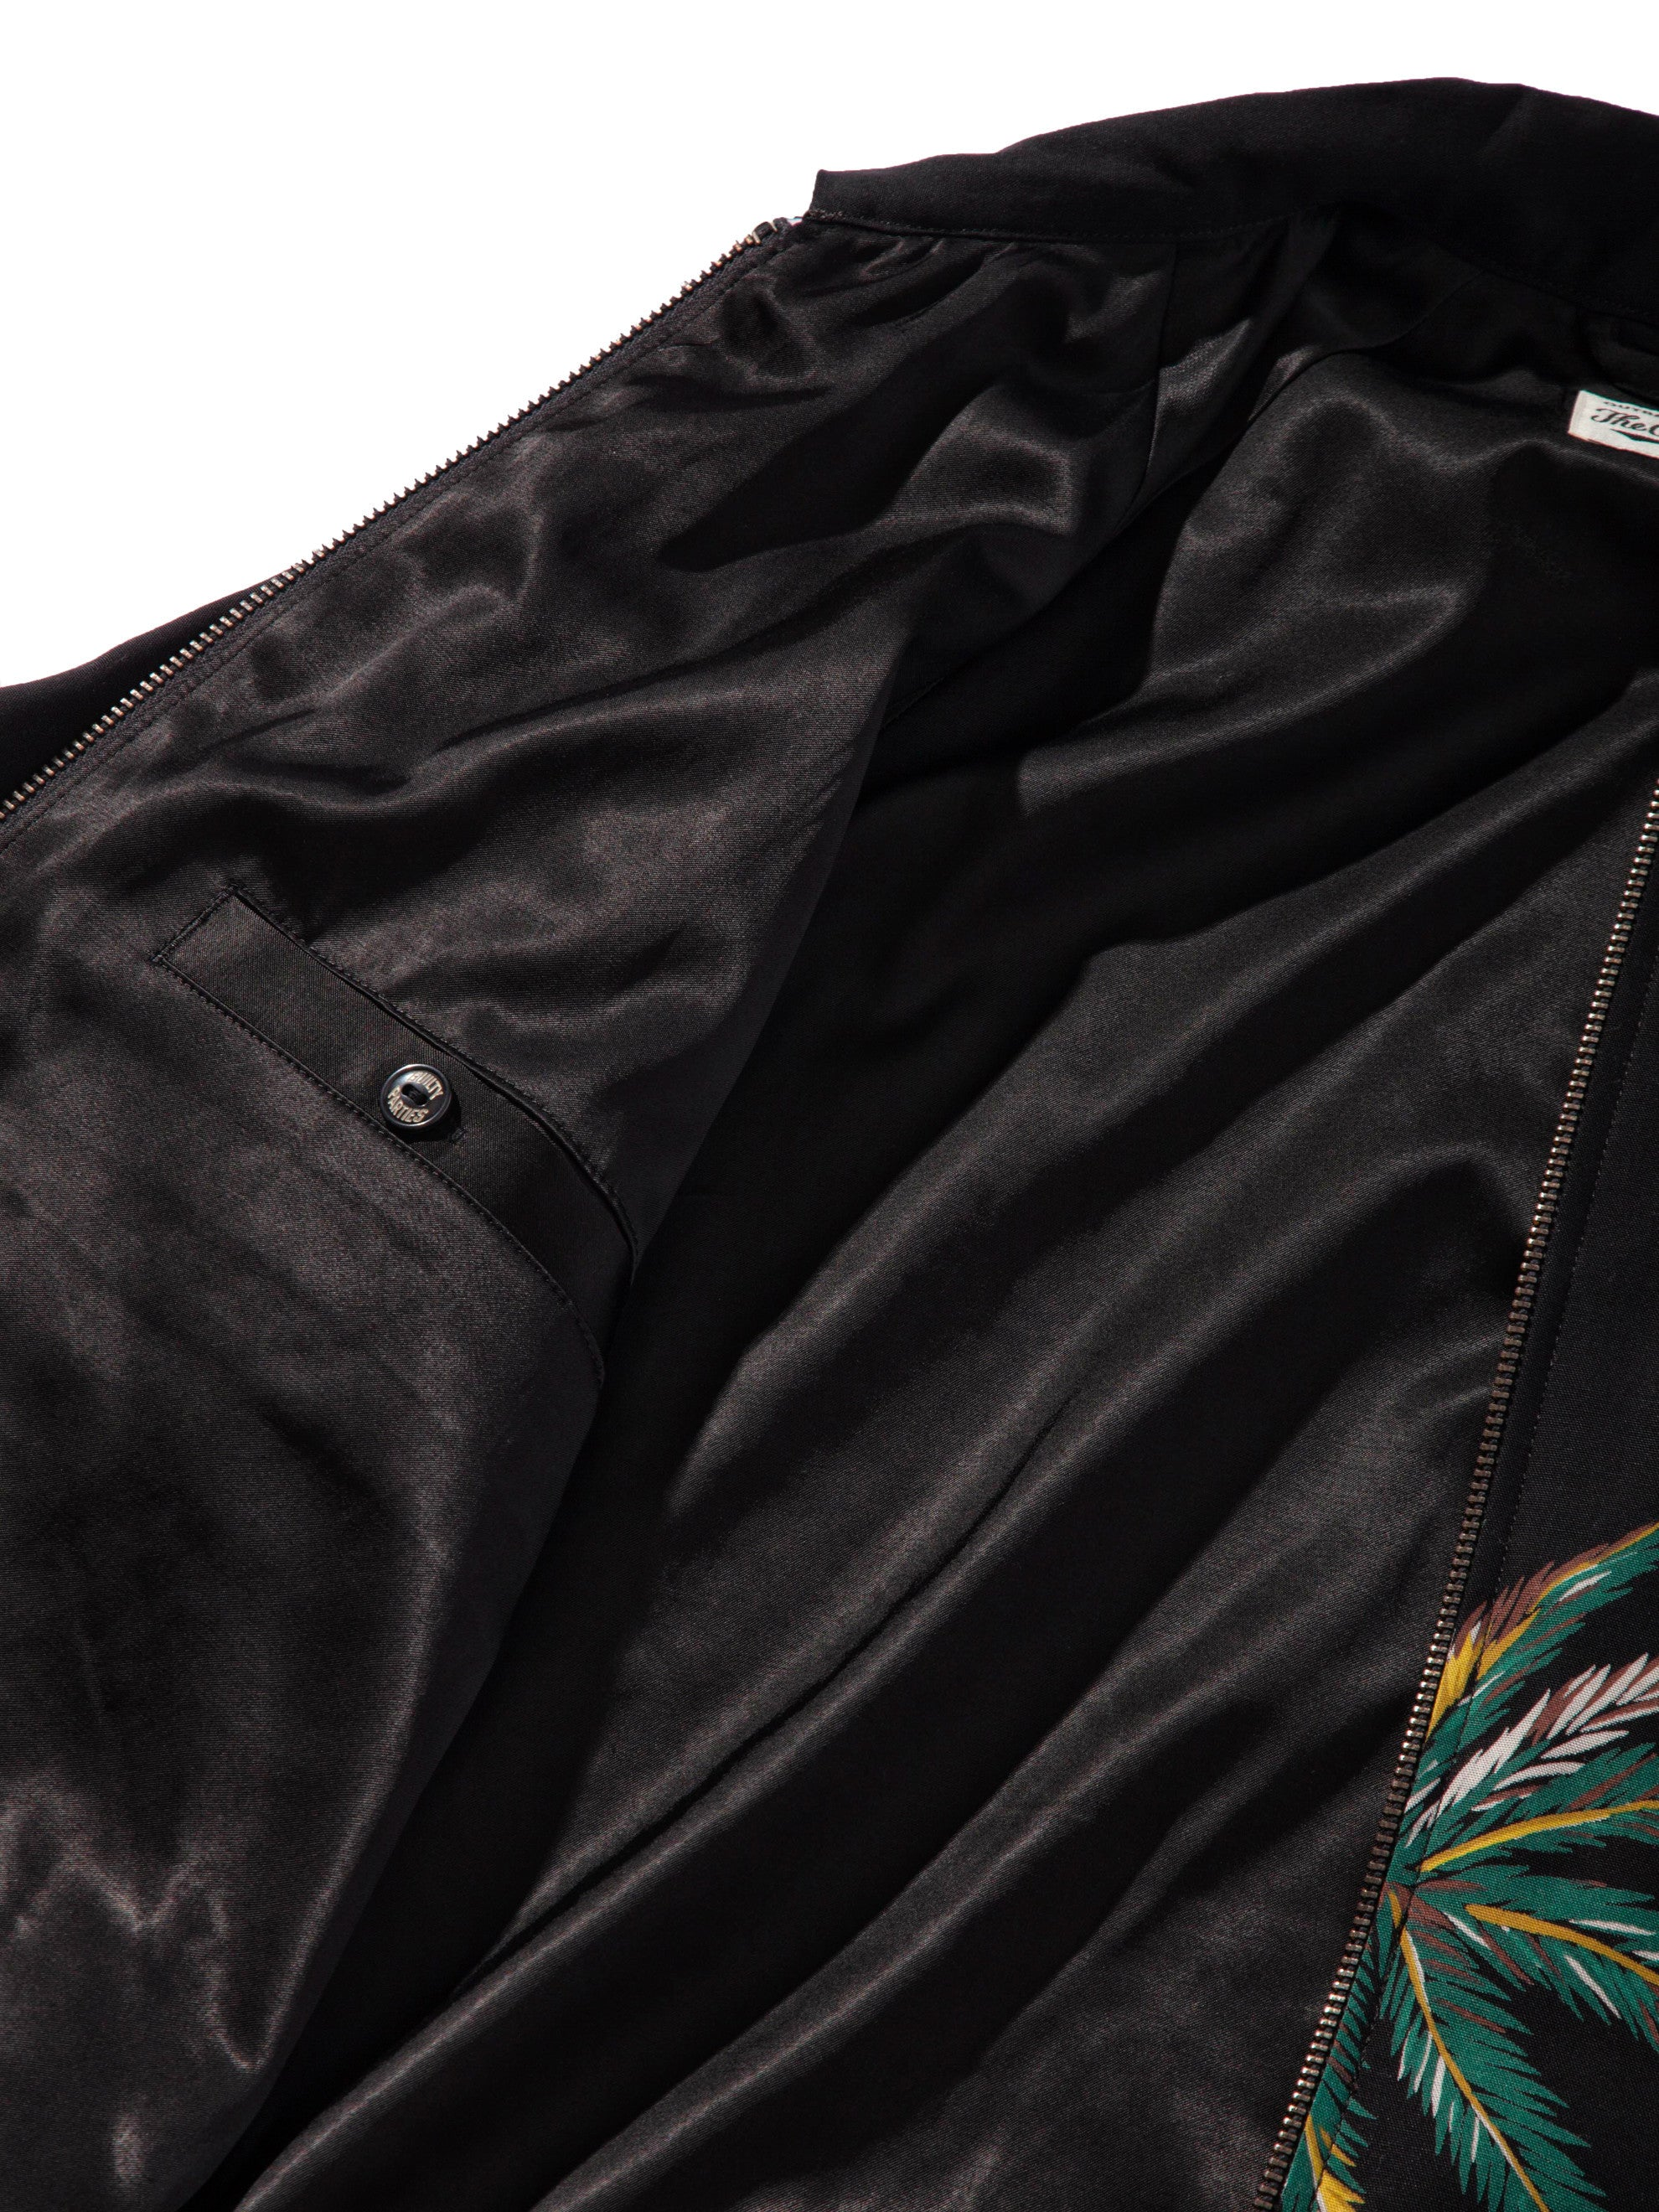 Black Sports Jacket (Palms) 9